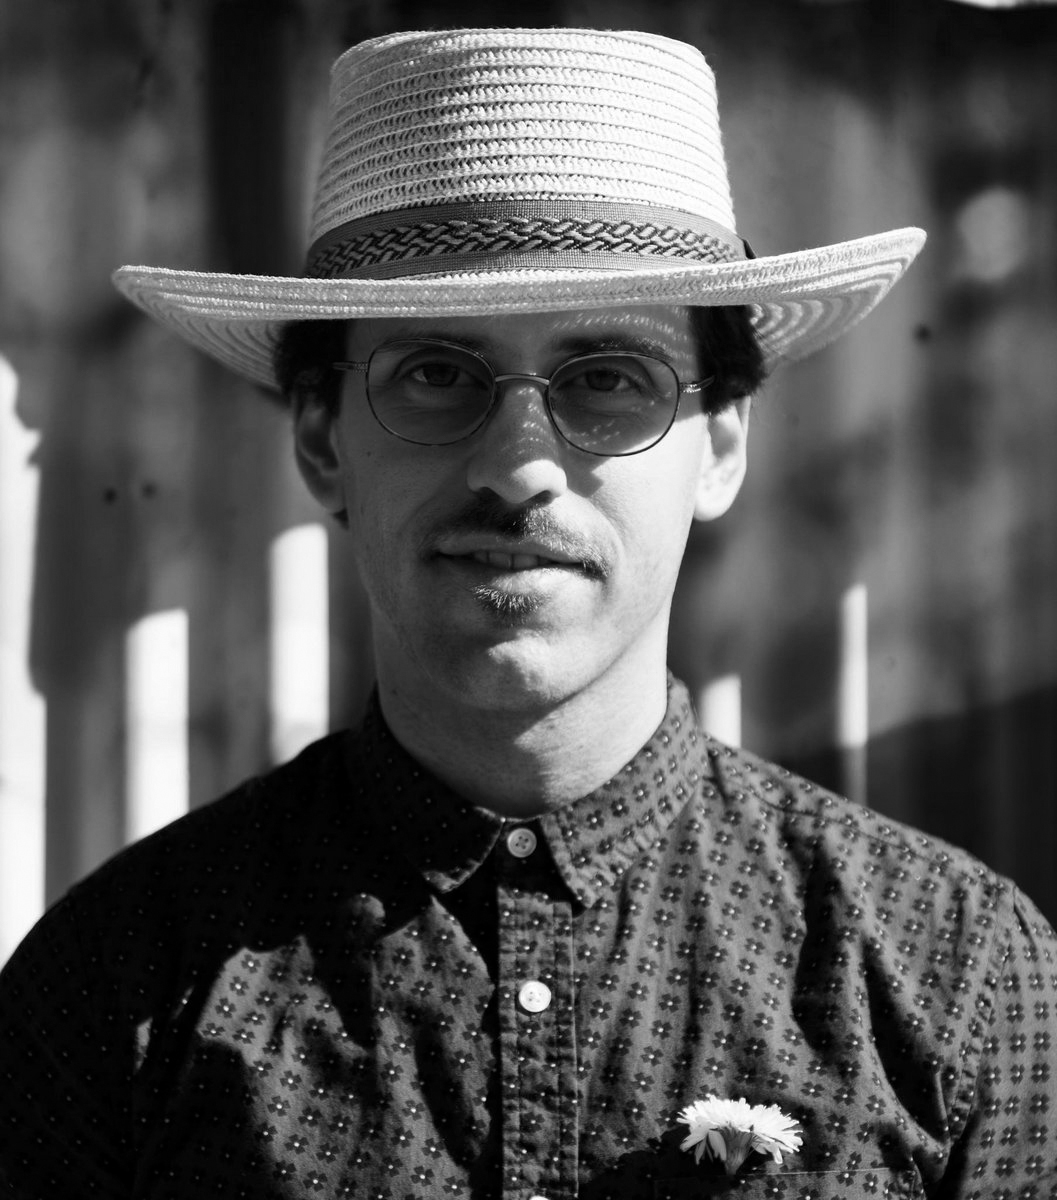 Album cover for The Shallow End of Denial by Jonathan Caplan. It's a black and white portrait of Jonathan Kaplan. He's light-skinned and has a goatee. He's wearing a patterned button-up shirt, a sun hat, and glasses.